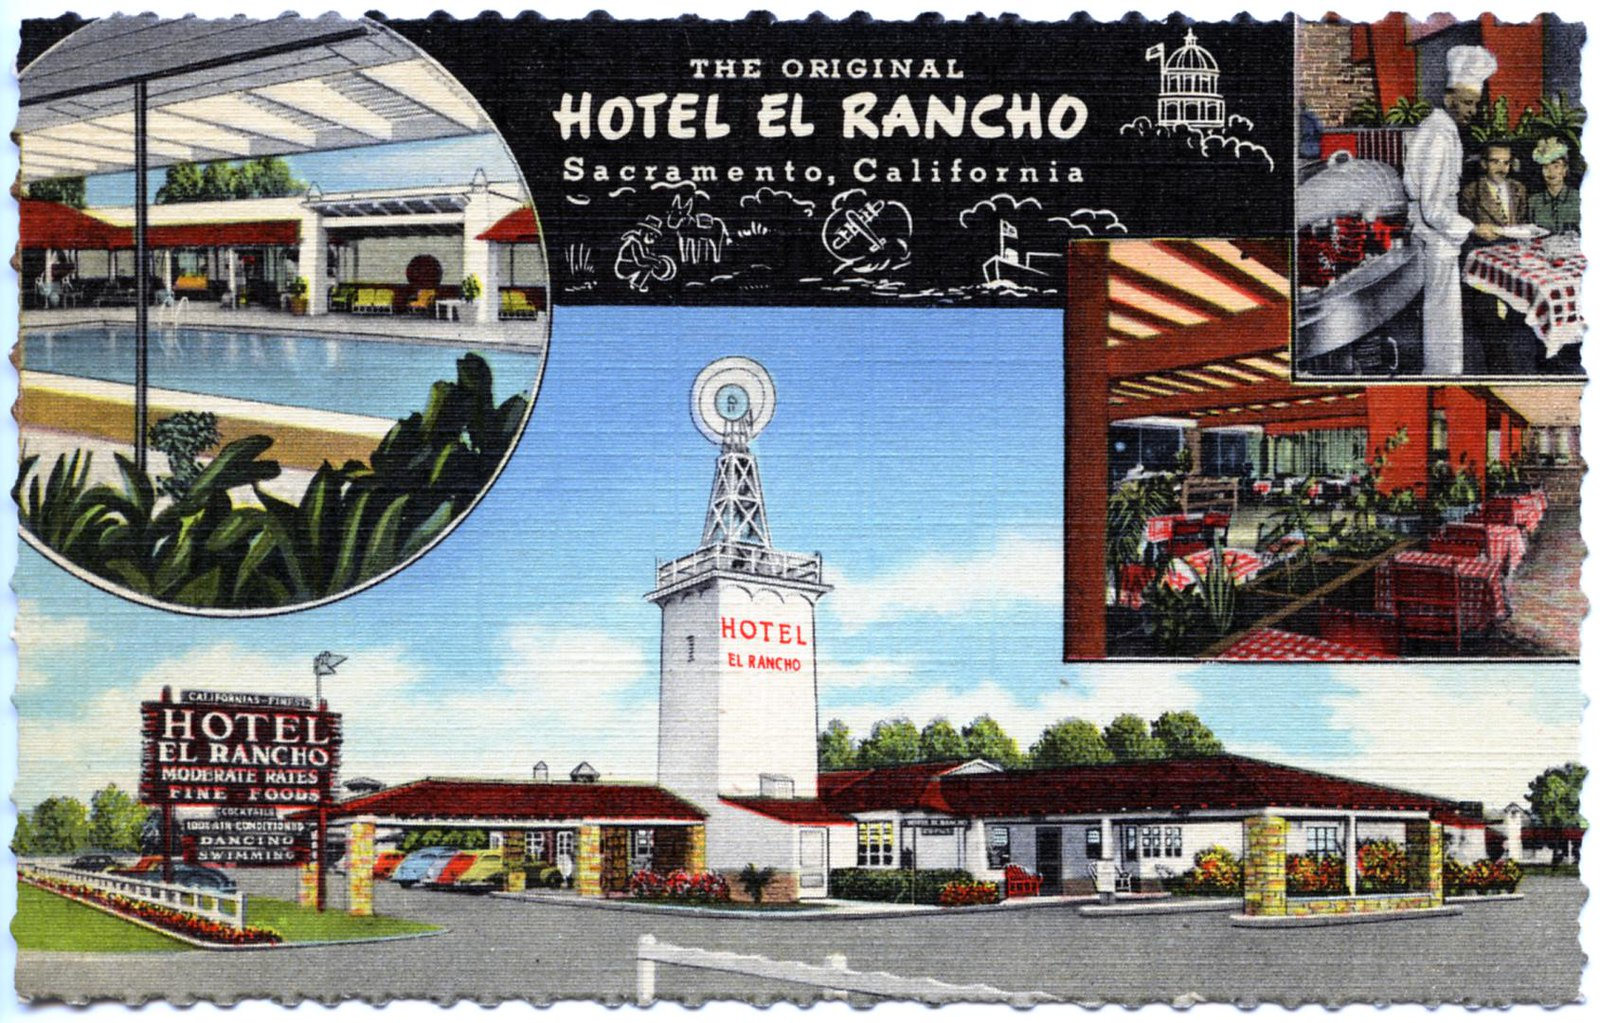 Hotel El Rancho Sacramento CA | by Edge and corner wear